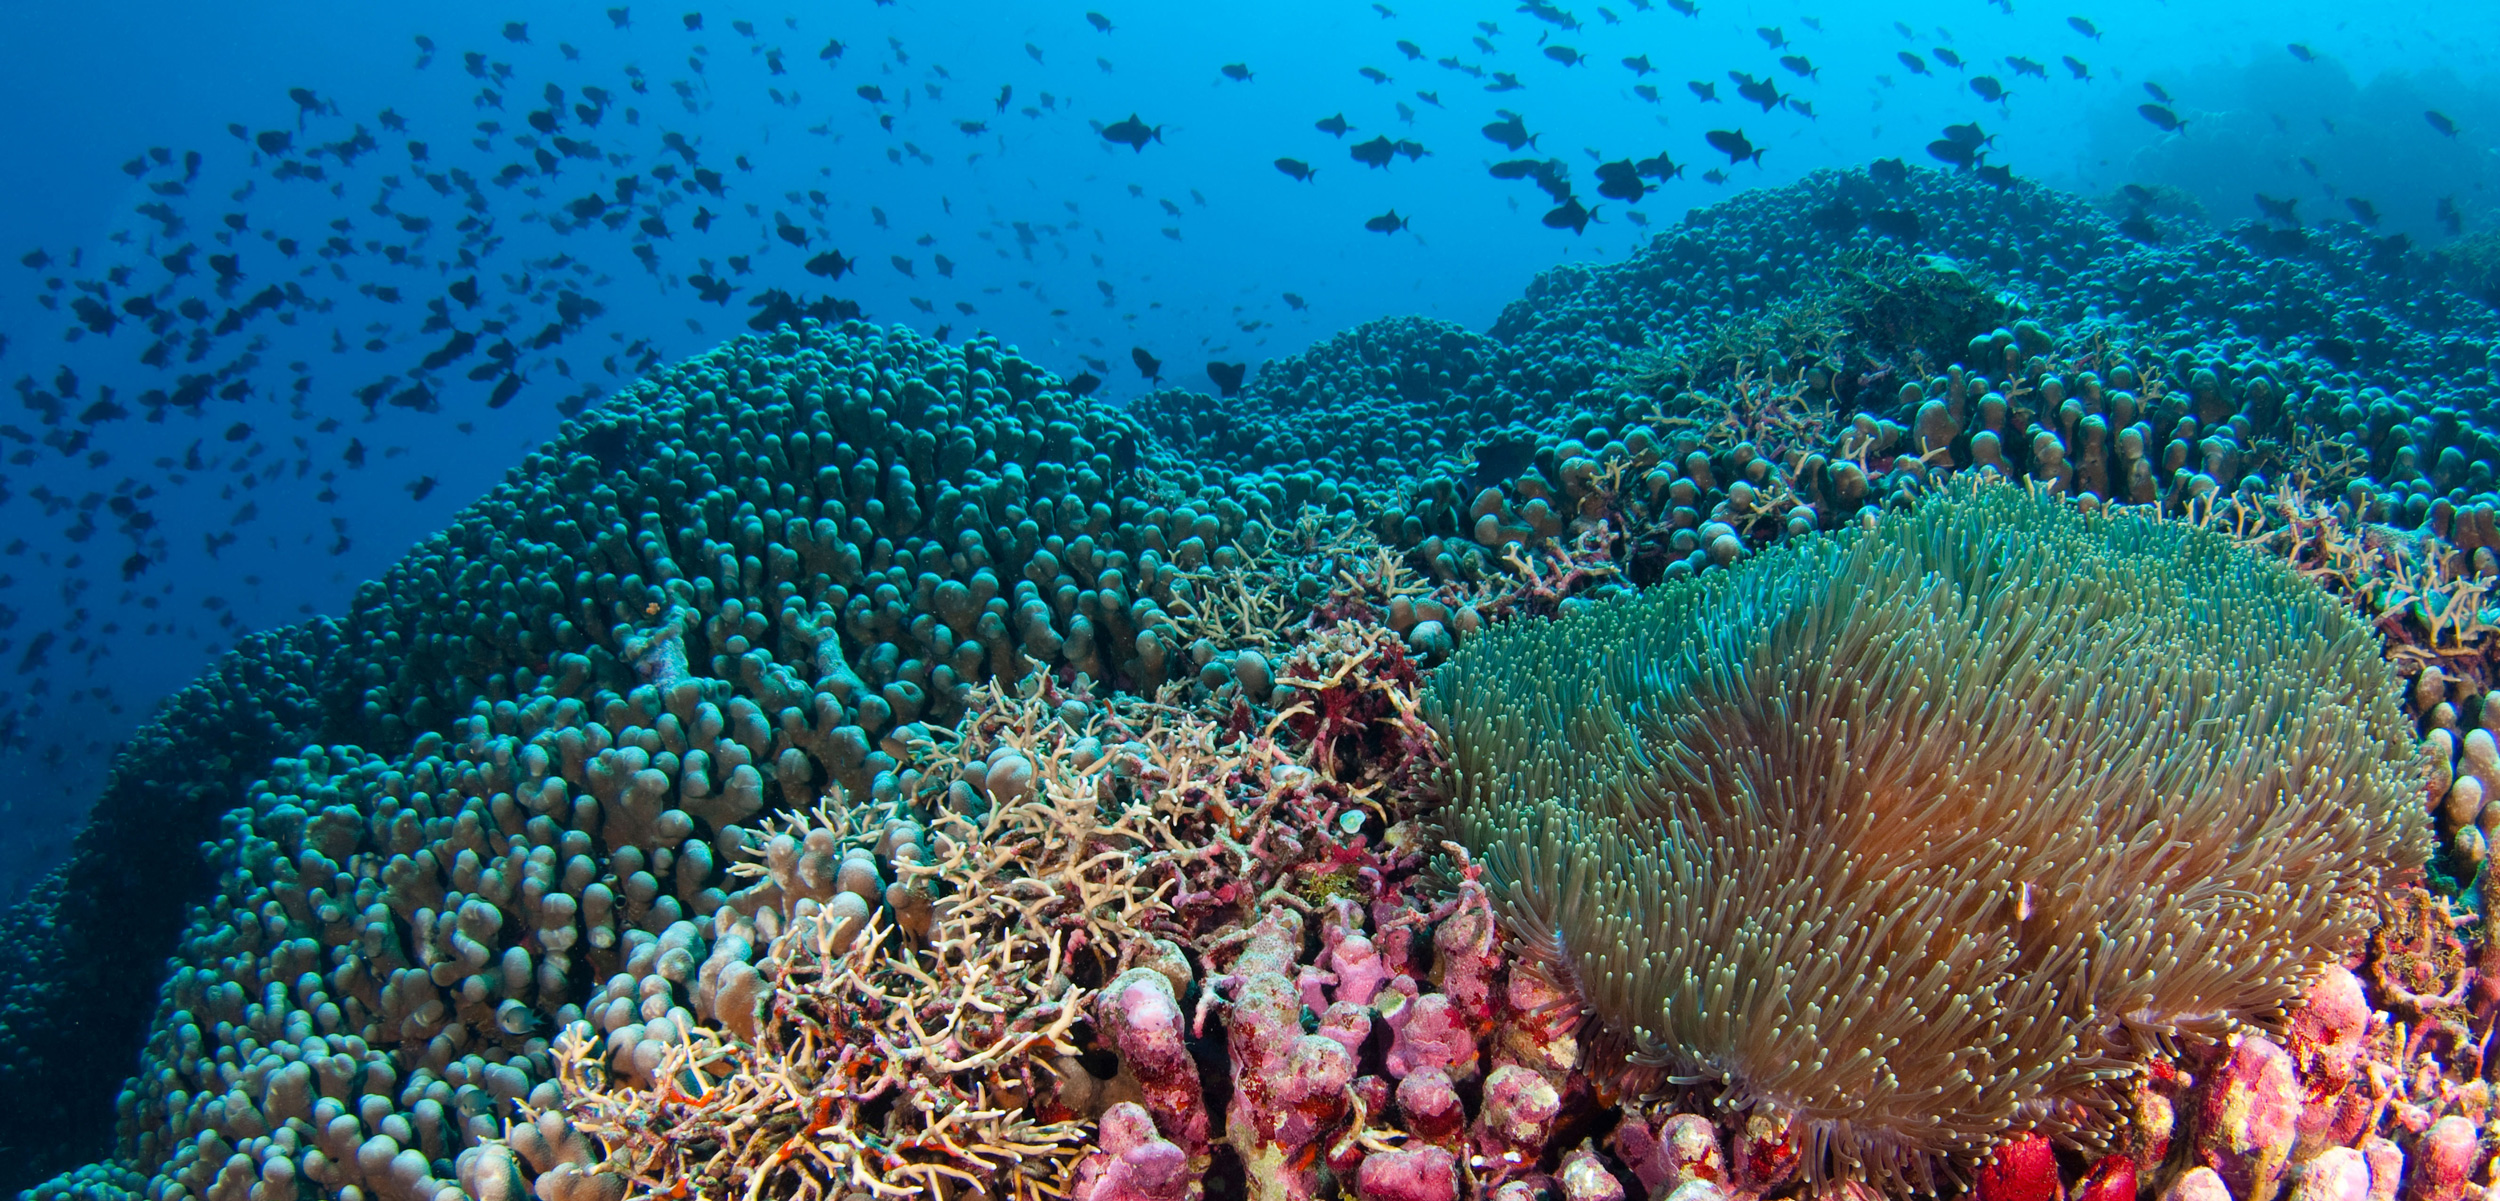 Coral reefs around Indonesia have been damaged by destructive fishing practices—those who care most about them are hoping local efforts can help restore the reefs to their former glory. Photo by Scubazoo/Alamy Stock Photo